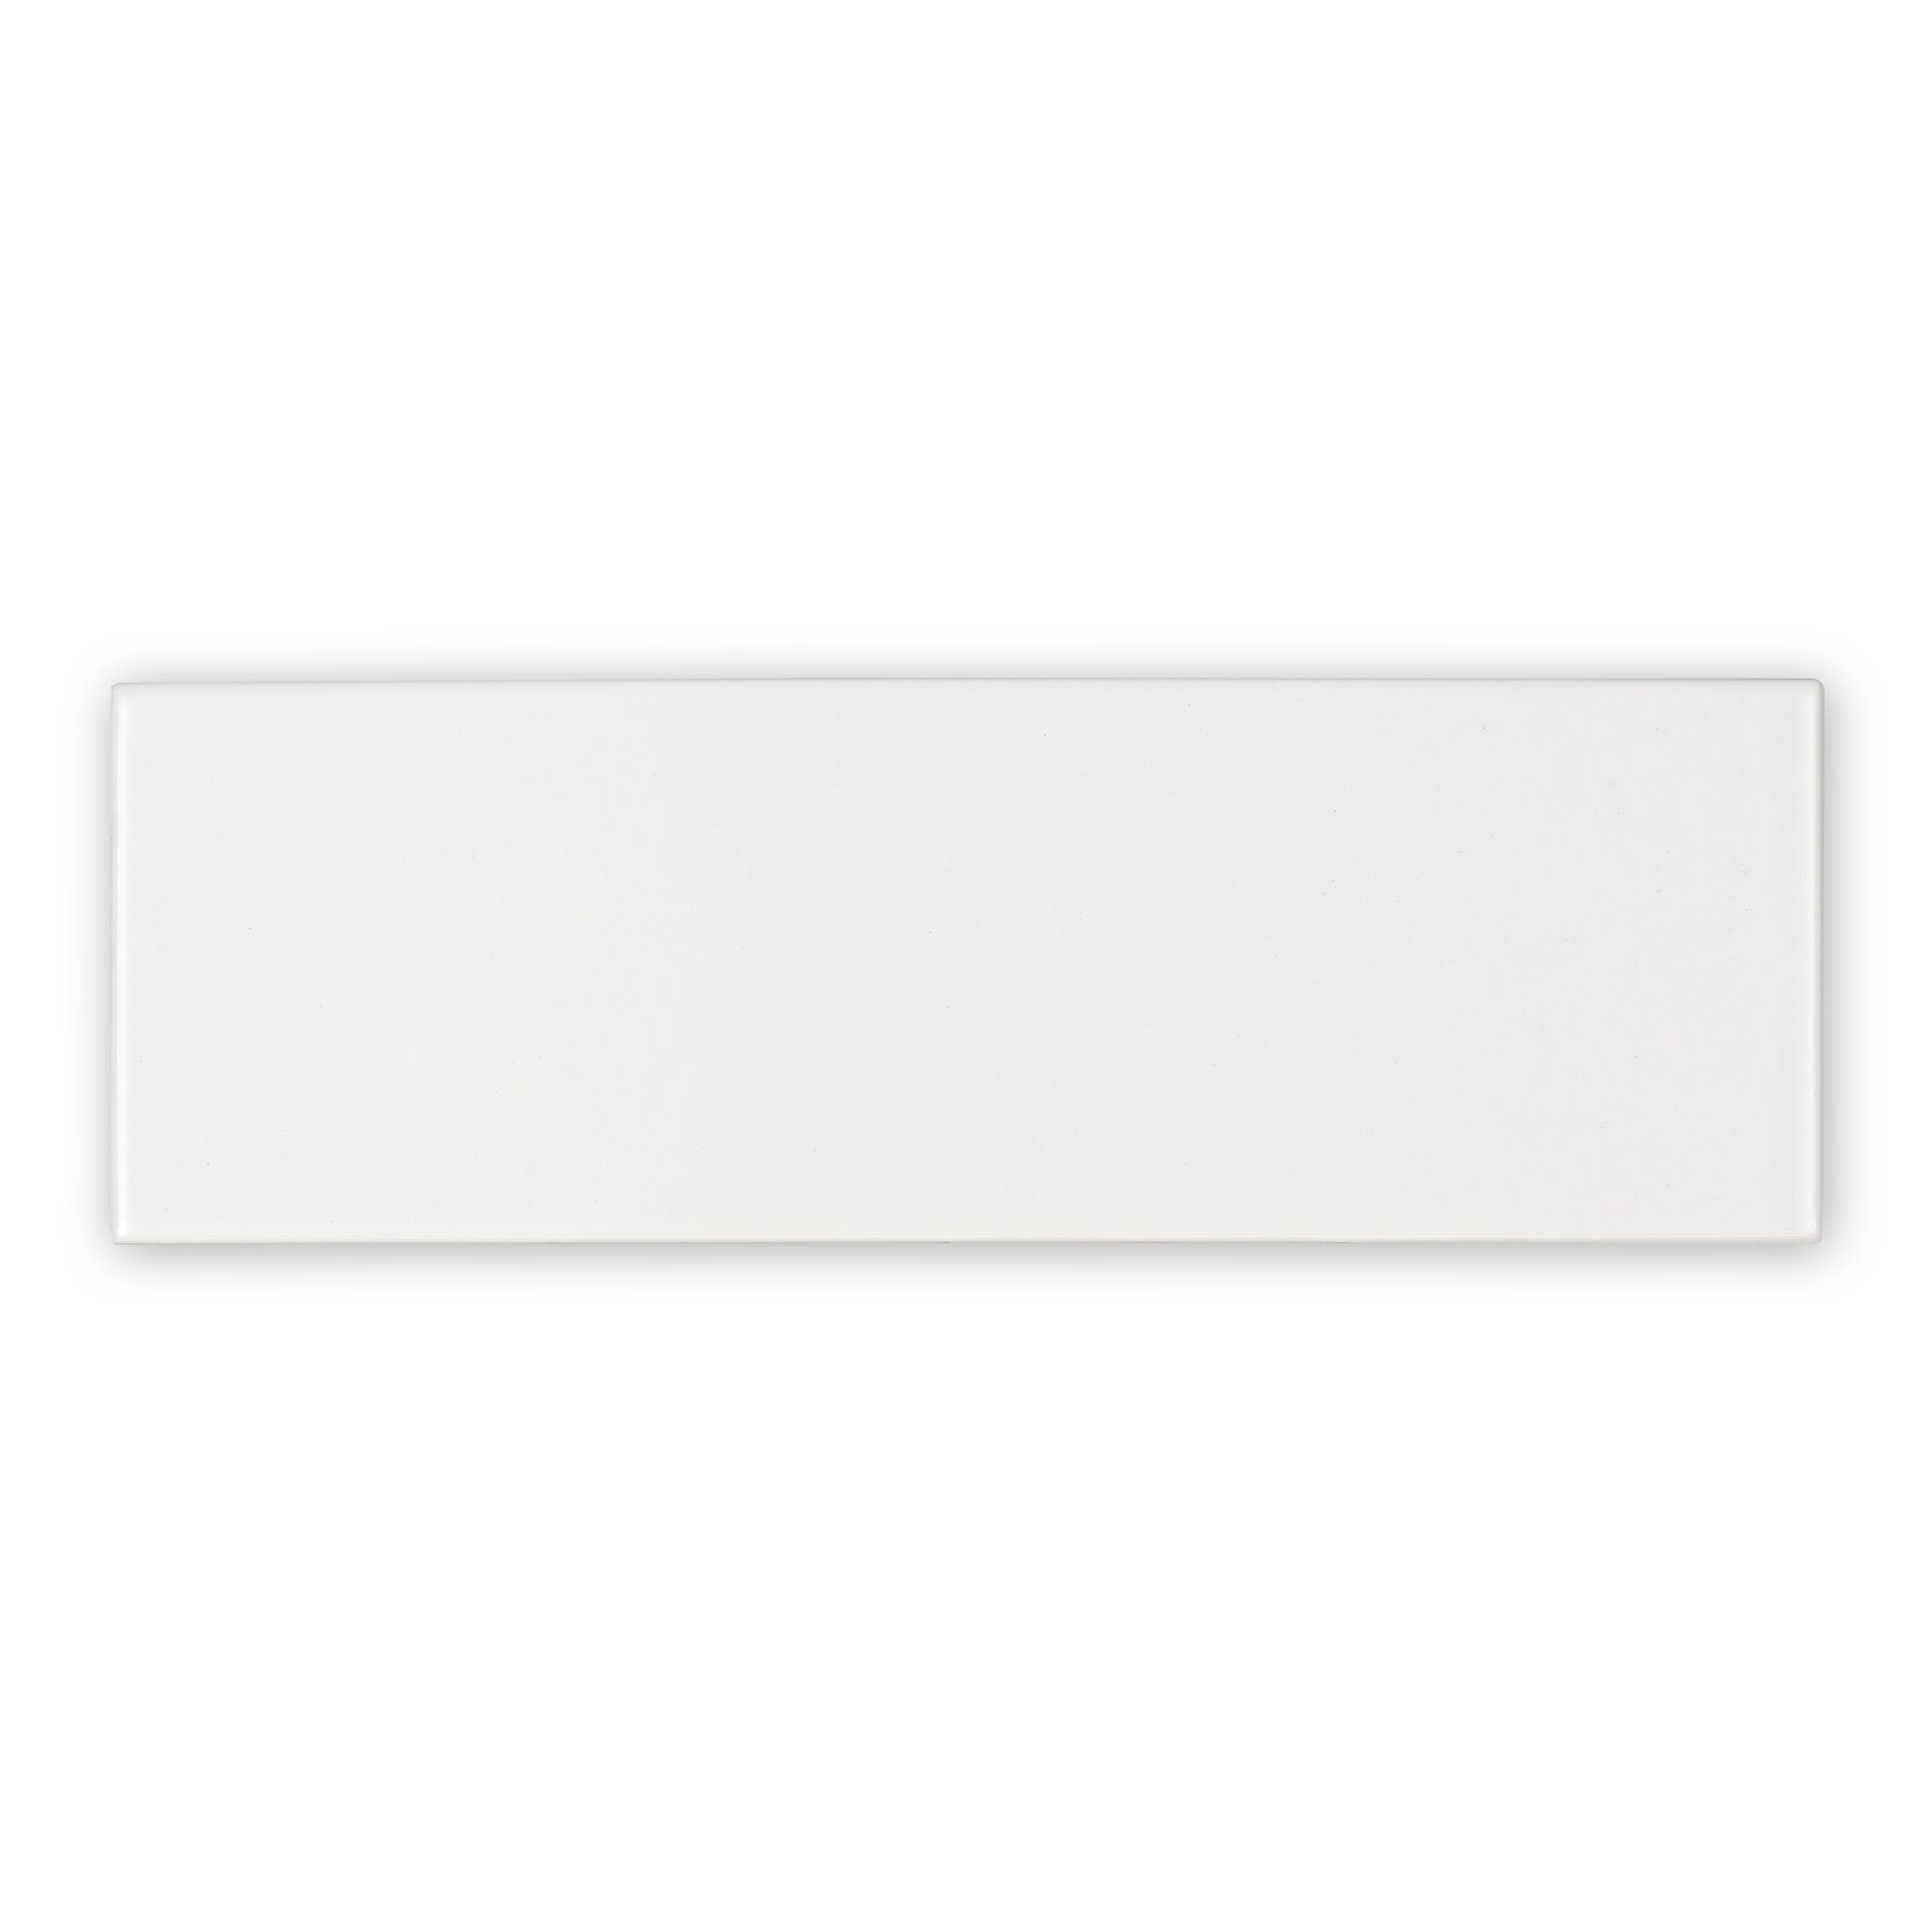 Architecture White Gloss 10x30